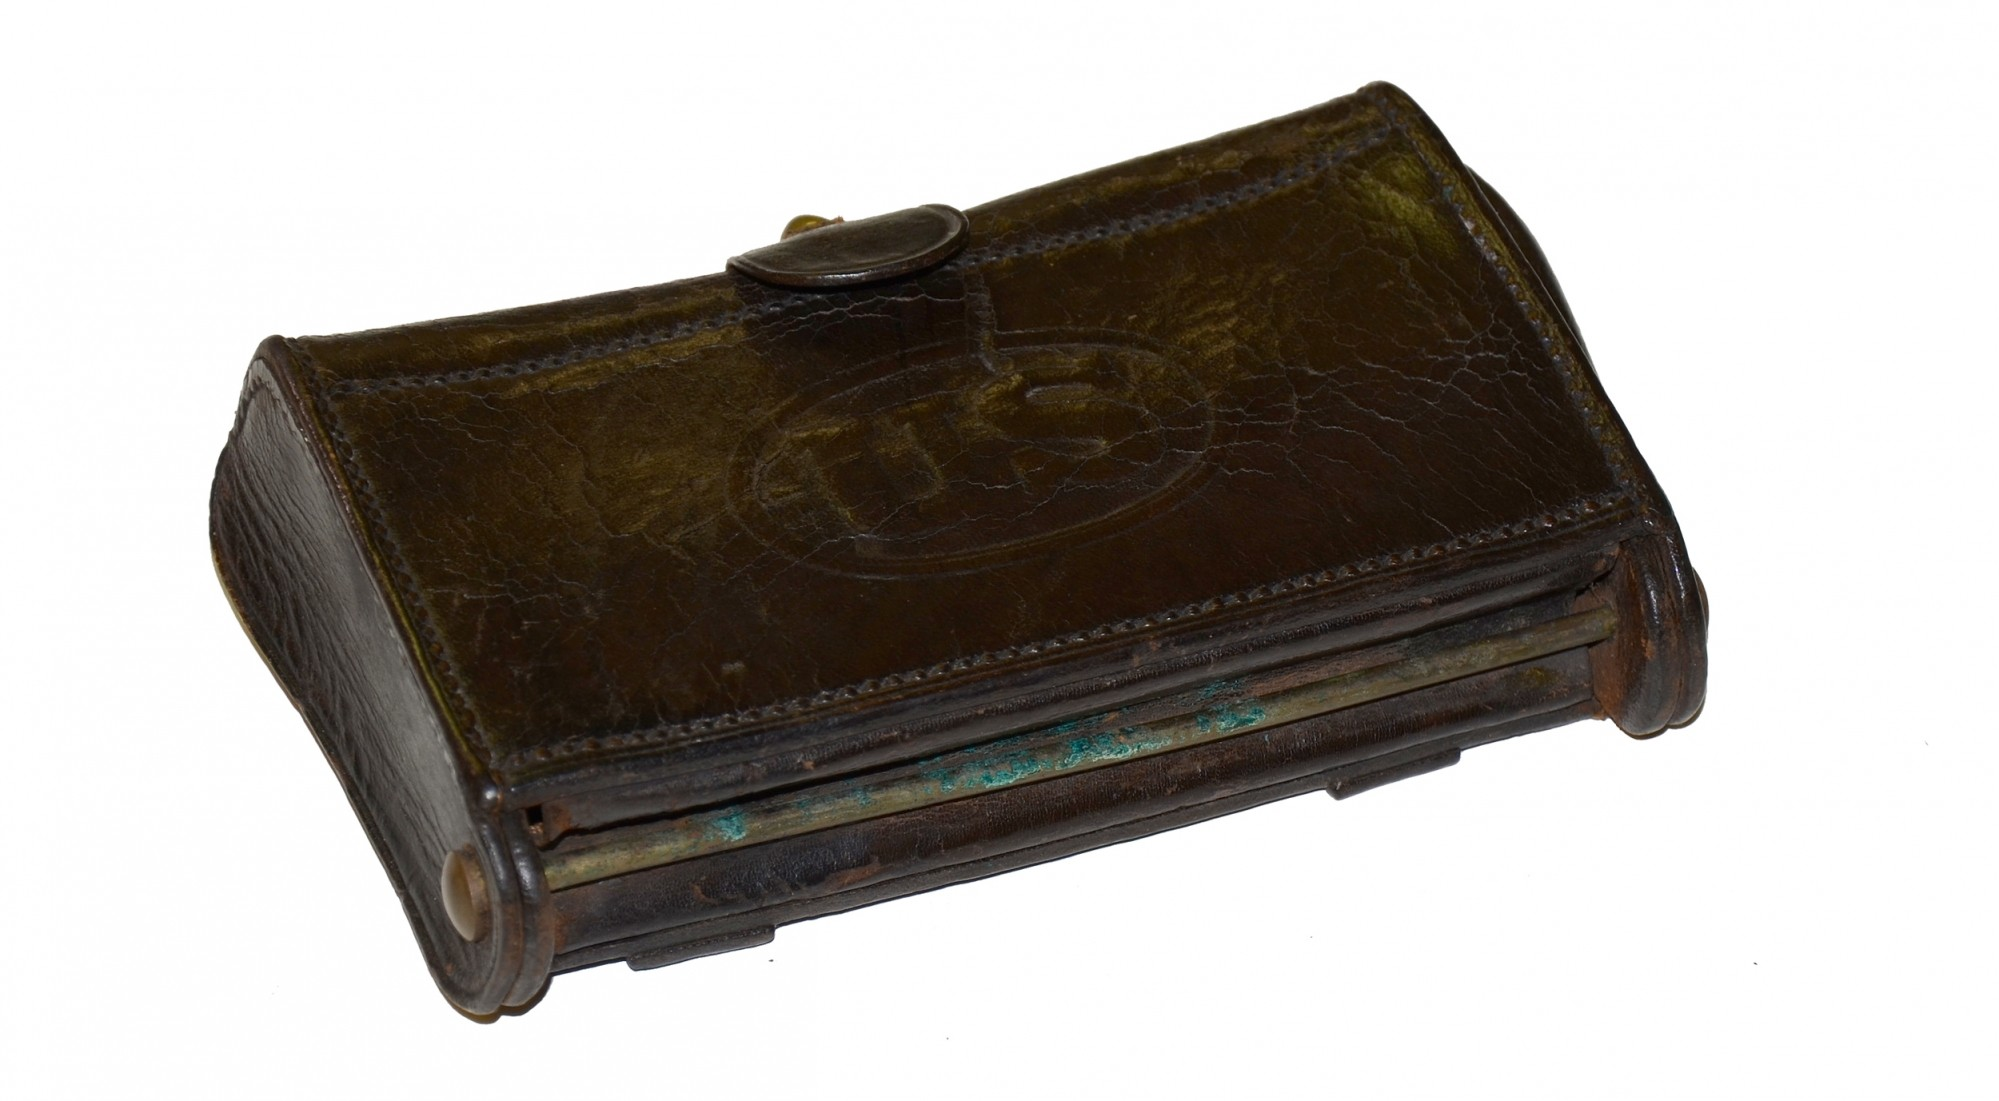 ARSENAL MARKED INDIAN WAR MCKEEVER CARTRIDGE BOX WITH AMMO